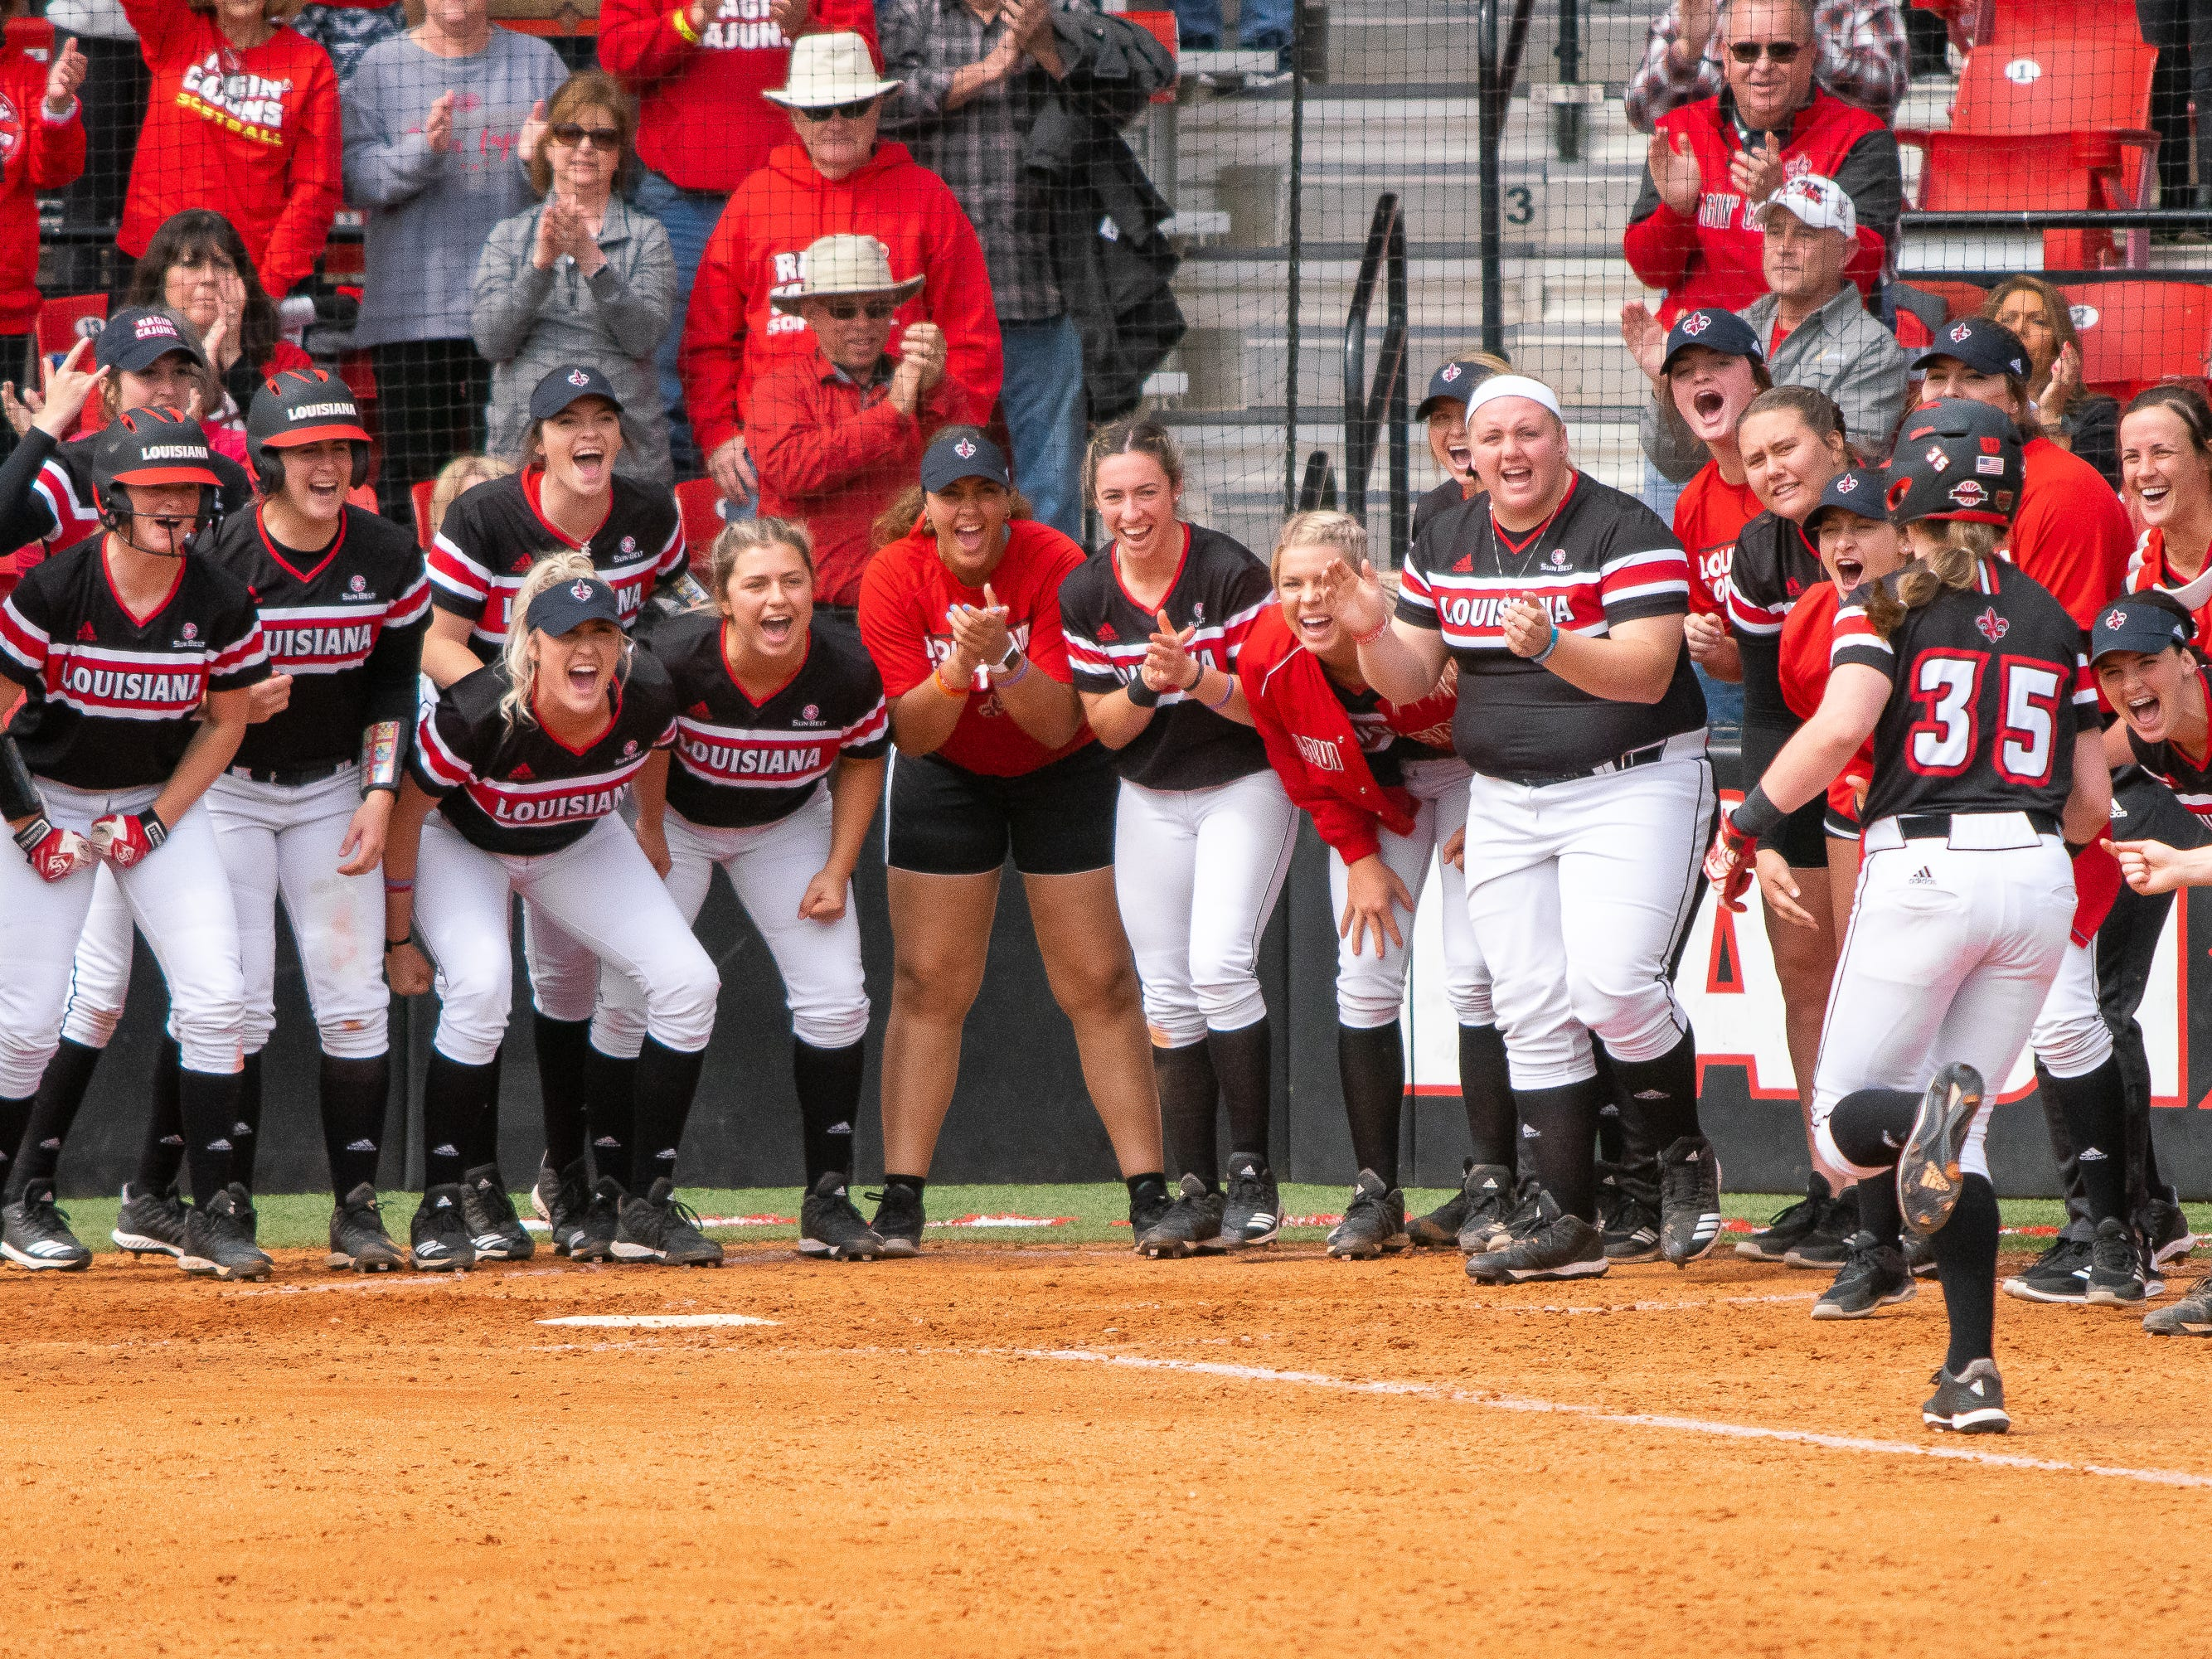 The UL softball team gathers around home plate to welcome Sarah Hudek after her home run hit as the Ragin' Cajuns take on the Troy Trojans at Yvette Girouard Field at Lamson Park on Saturday, March 16, 2019.